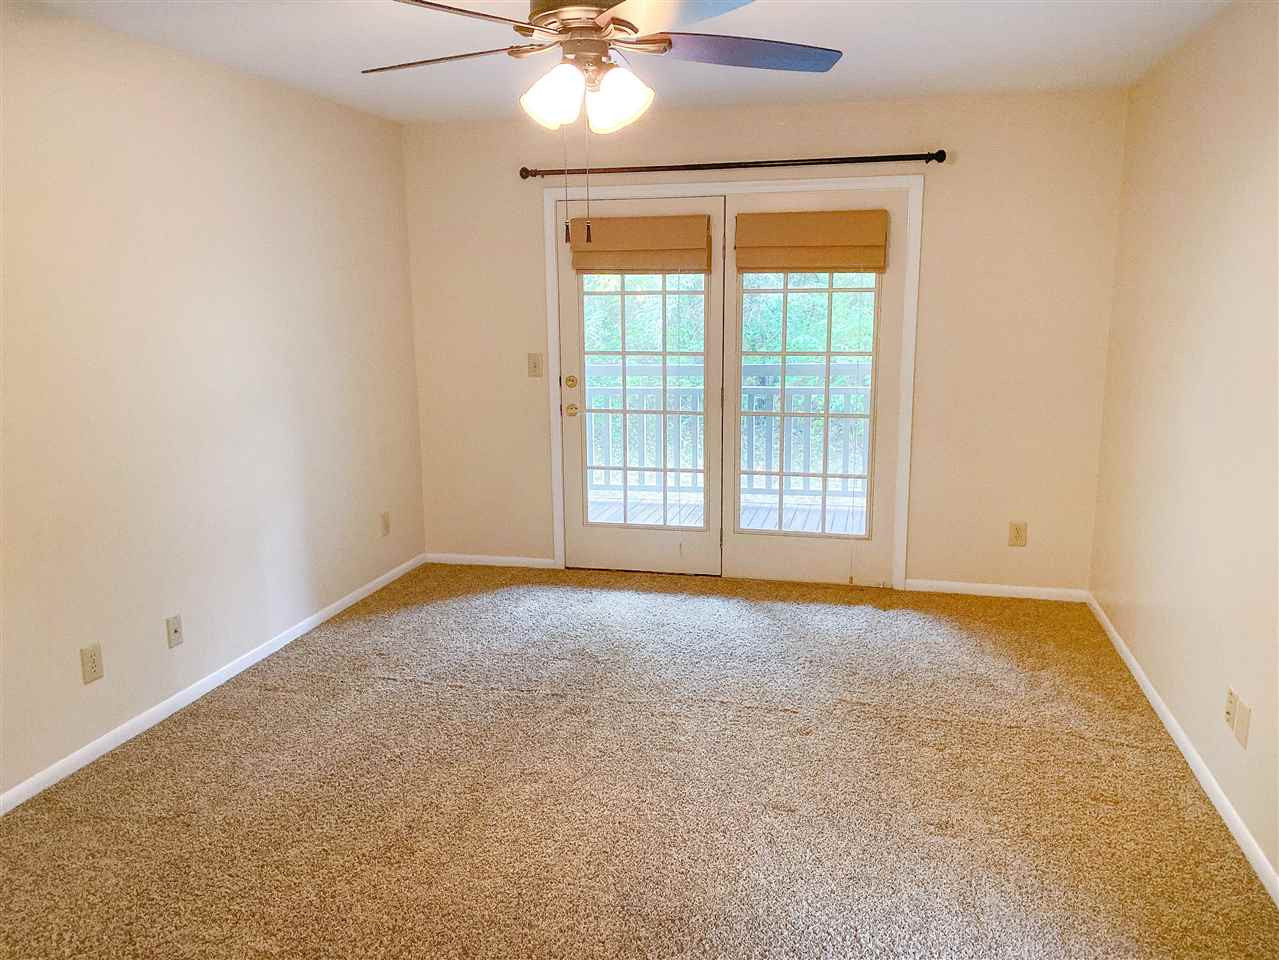 Photo 3 for 535 Cloverfield Ln, 202 Fort Wright, KY 41011